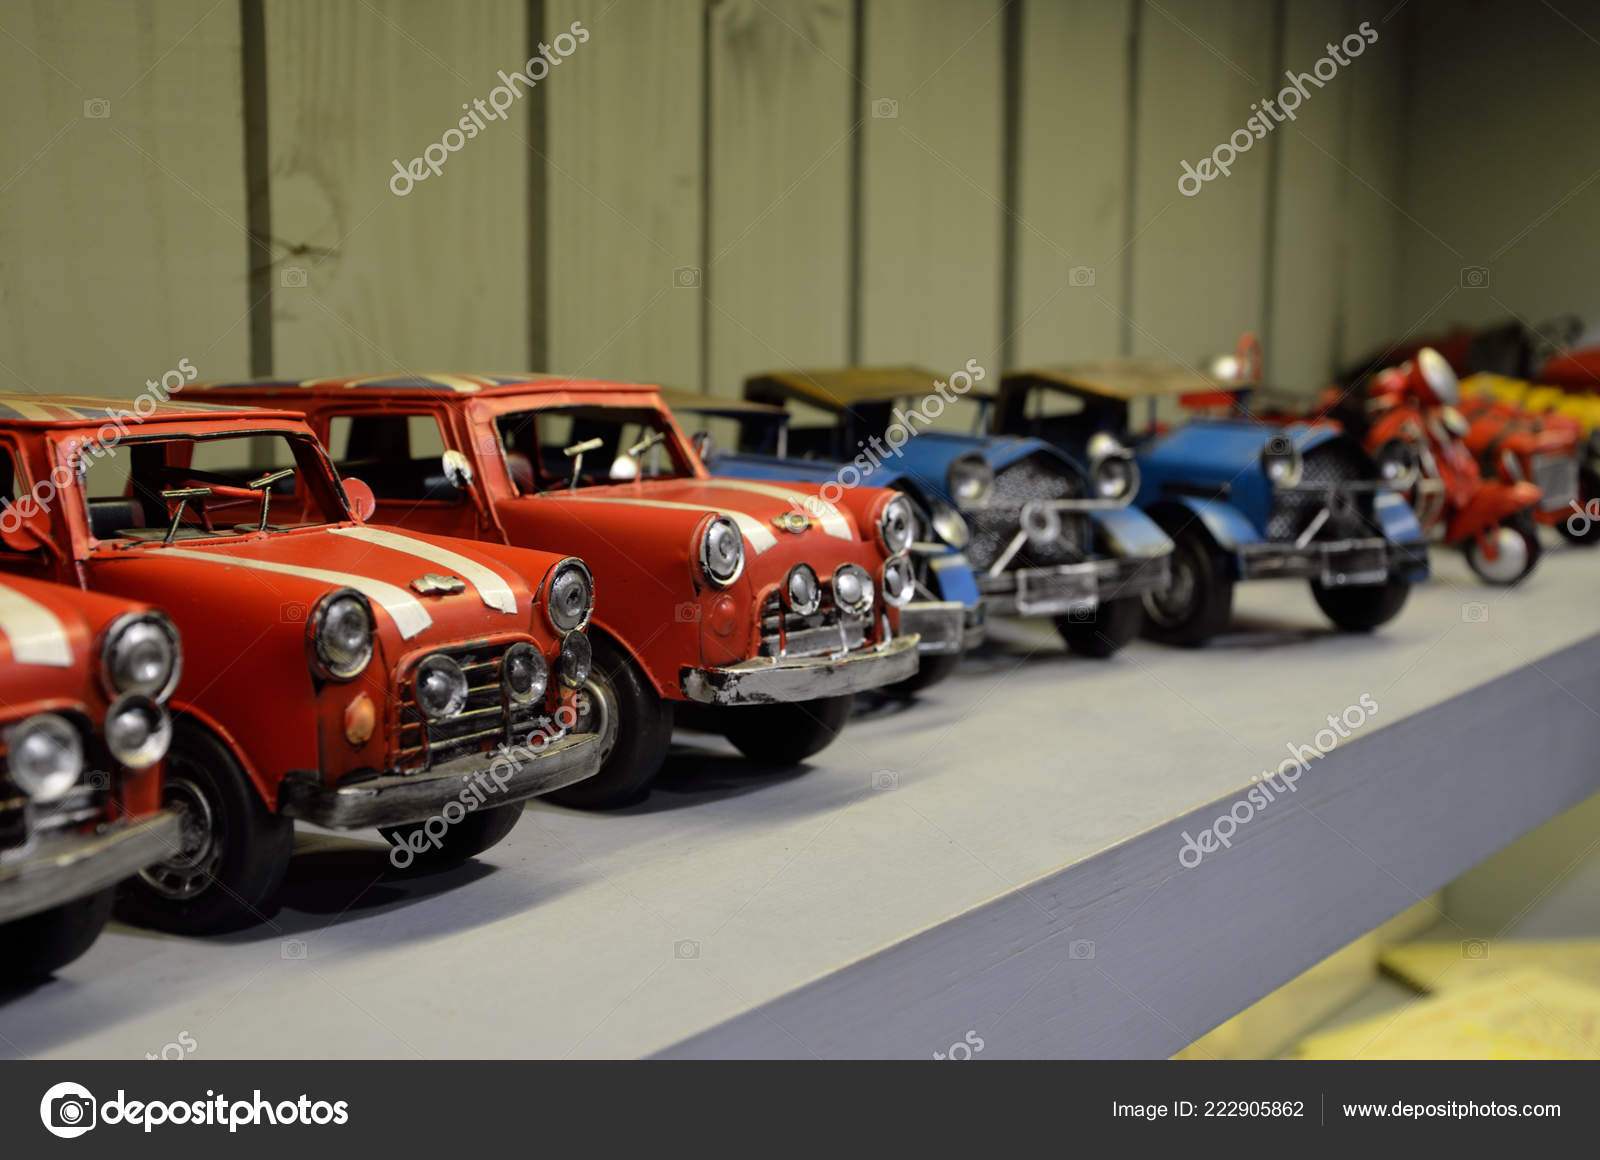 Exhibition Of Toy Cars Stock Editorial Photo Igor030005gmail